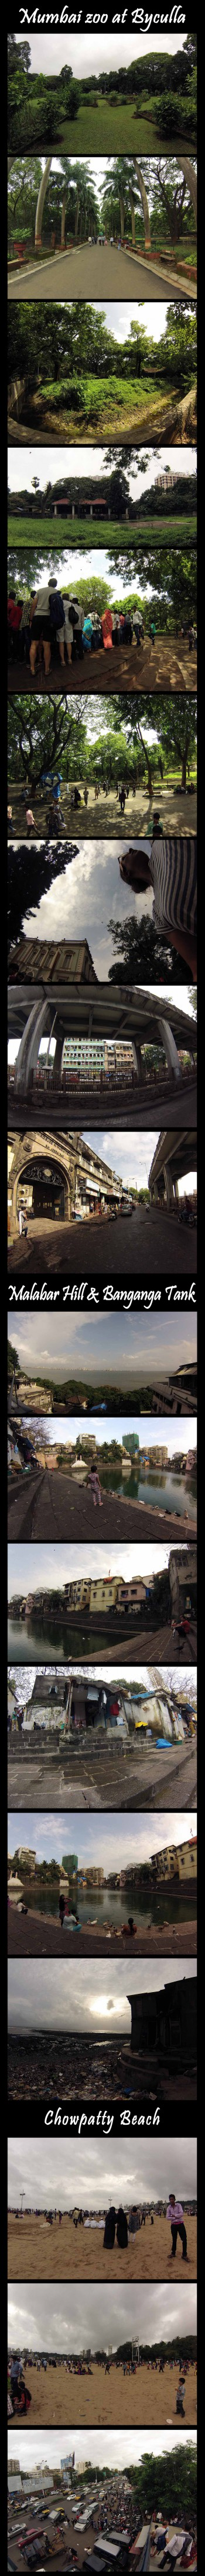 india,mumbai,eid,people,crowd,muslims,big bazaar,zoo,byculla,malabar hill,banganga tank